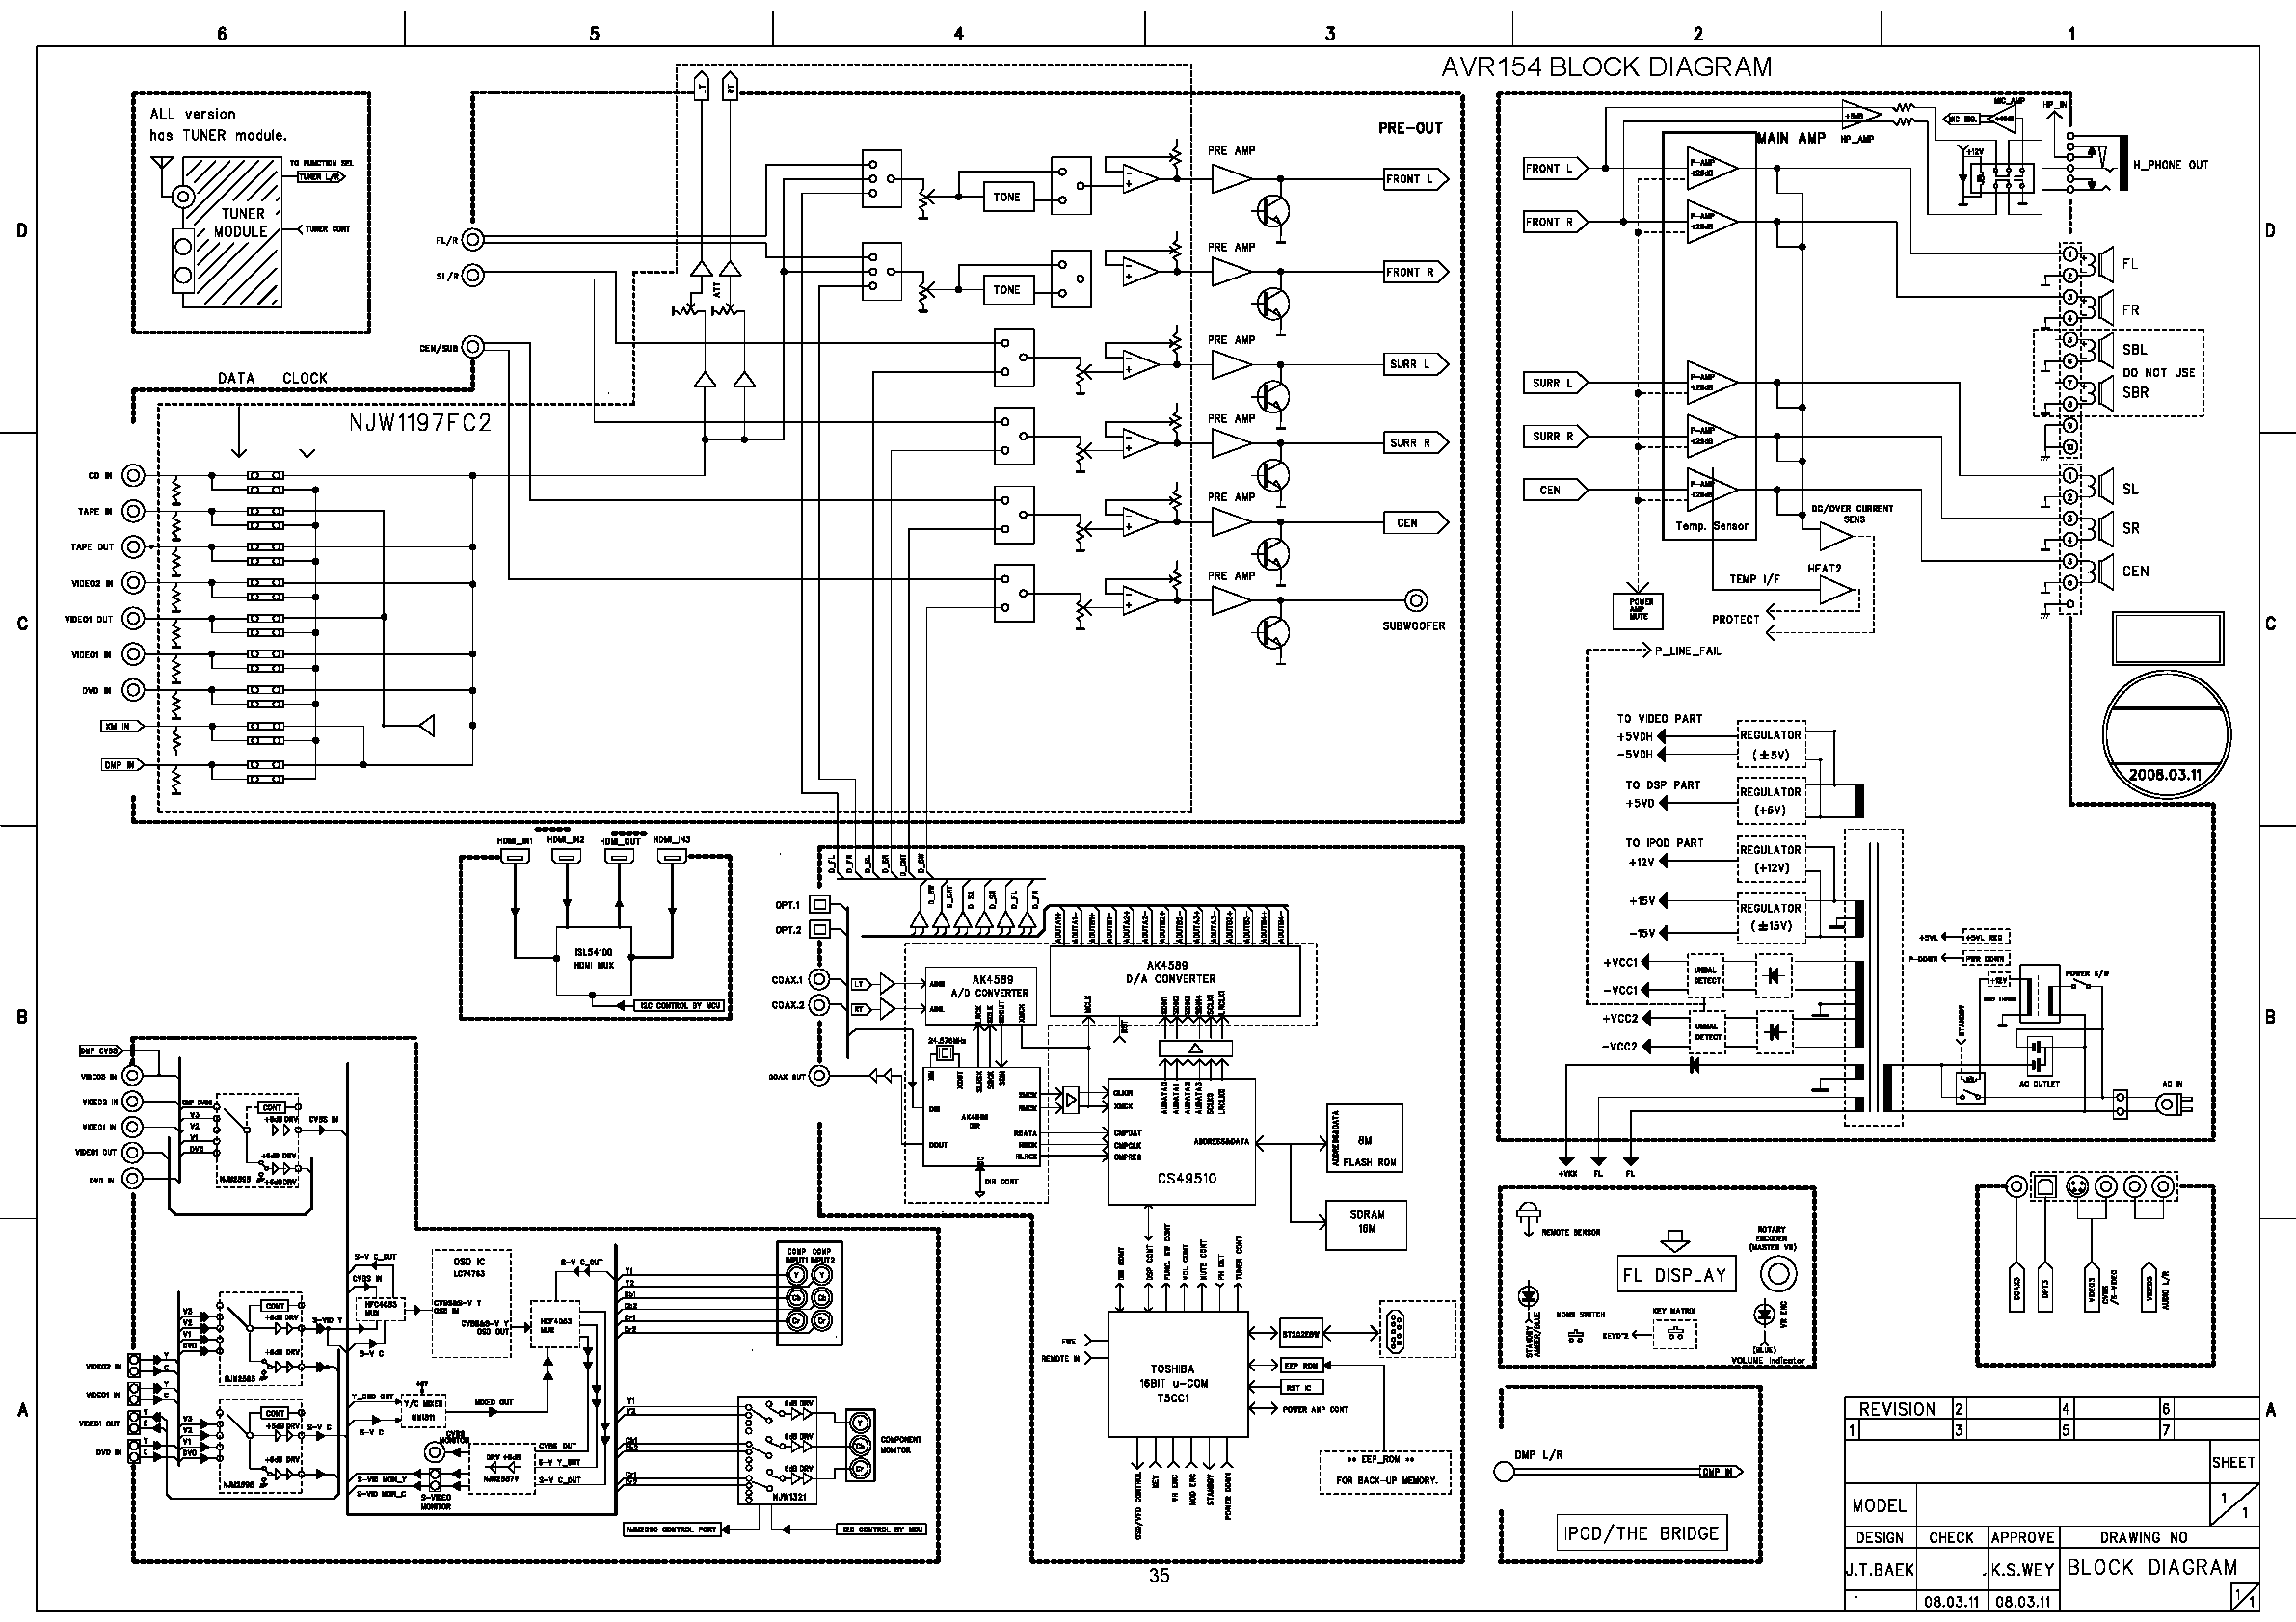 2001 kia sportage stereo wiring diagram with 2003 Honda Accord Hvac Radio Clock Display Wiring Diagram Pdf on 2007 Kia Spectra Stereo Wiring Diagram likewise Hyundai Sonata Evap Wiring Diagram additionally 2002 Chevy Cavalier Wiring Diagram Schematic likewise Hss Guitar Wiring Diagram in addition 88 Ford Bronco Ignition Power Wiring Diagram.